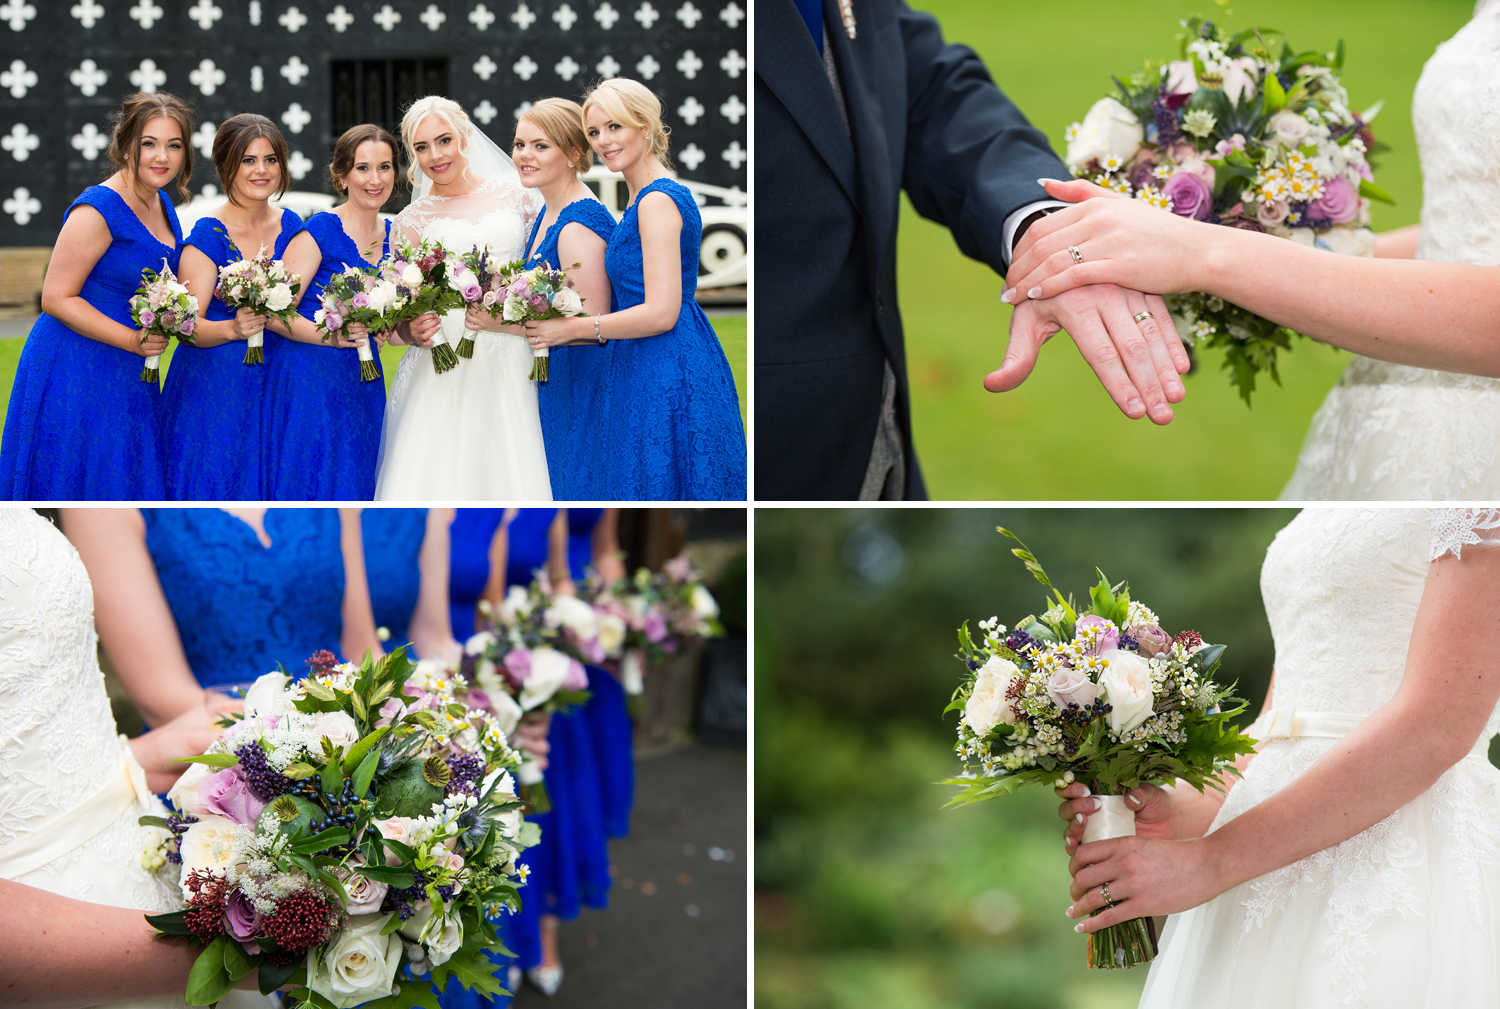 A collection of wedding bouquet photographs